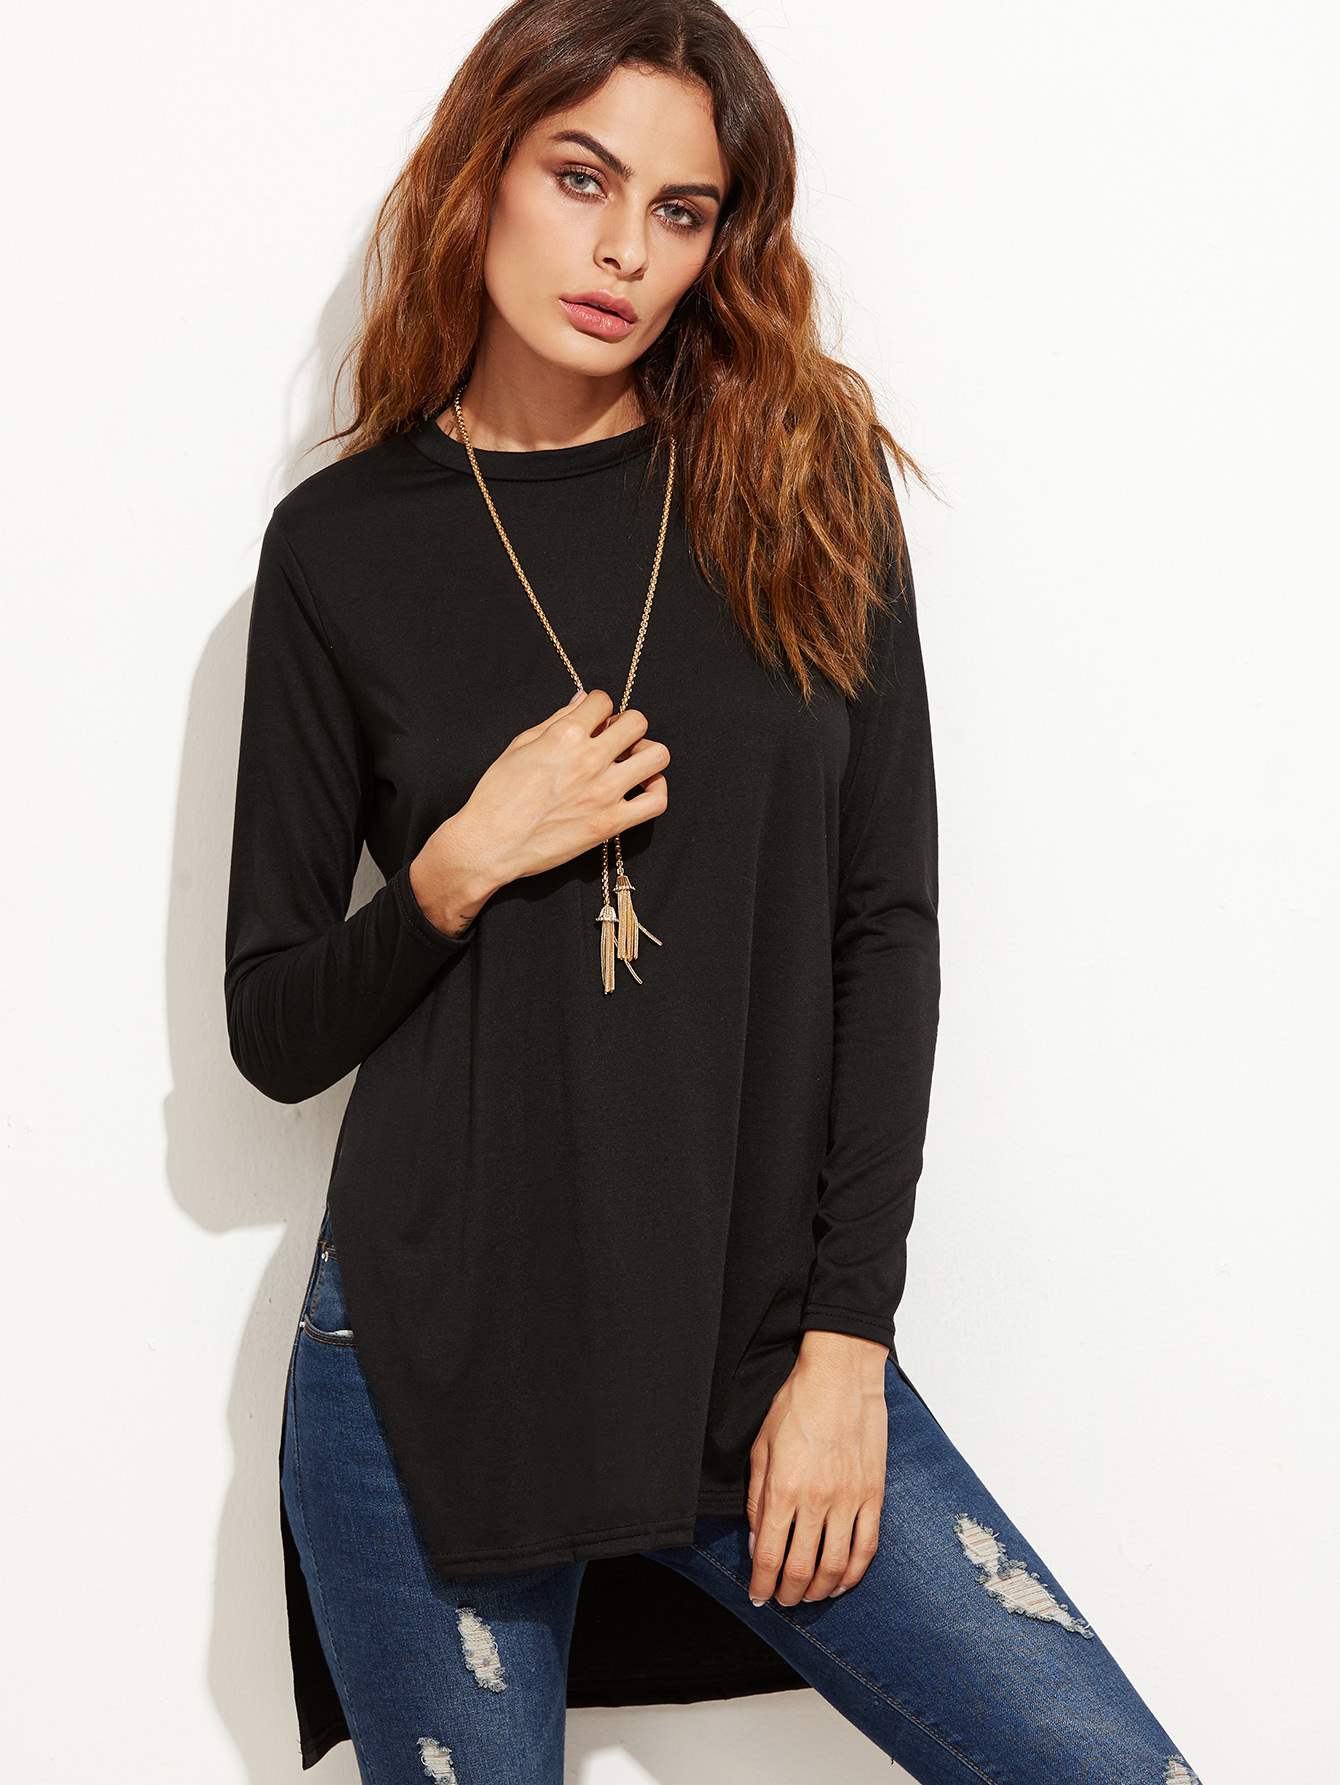 Black Slit Side High Low T-shirt side slit high low shirt collar long sleeve shirt